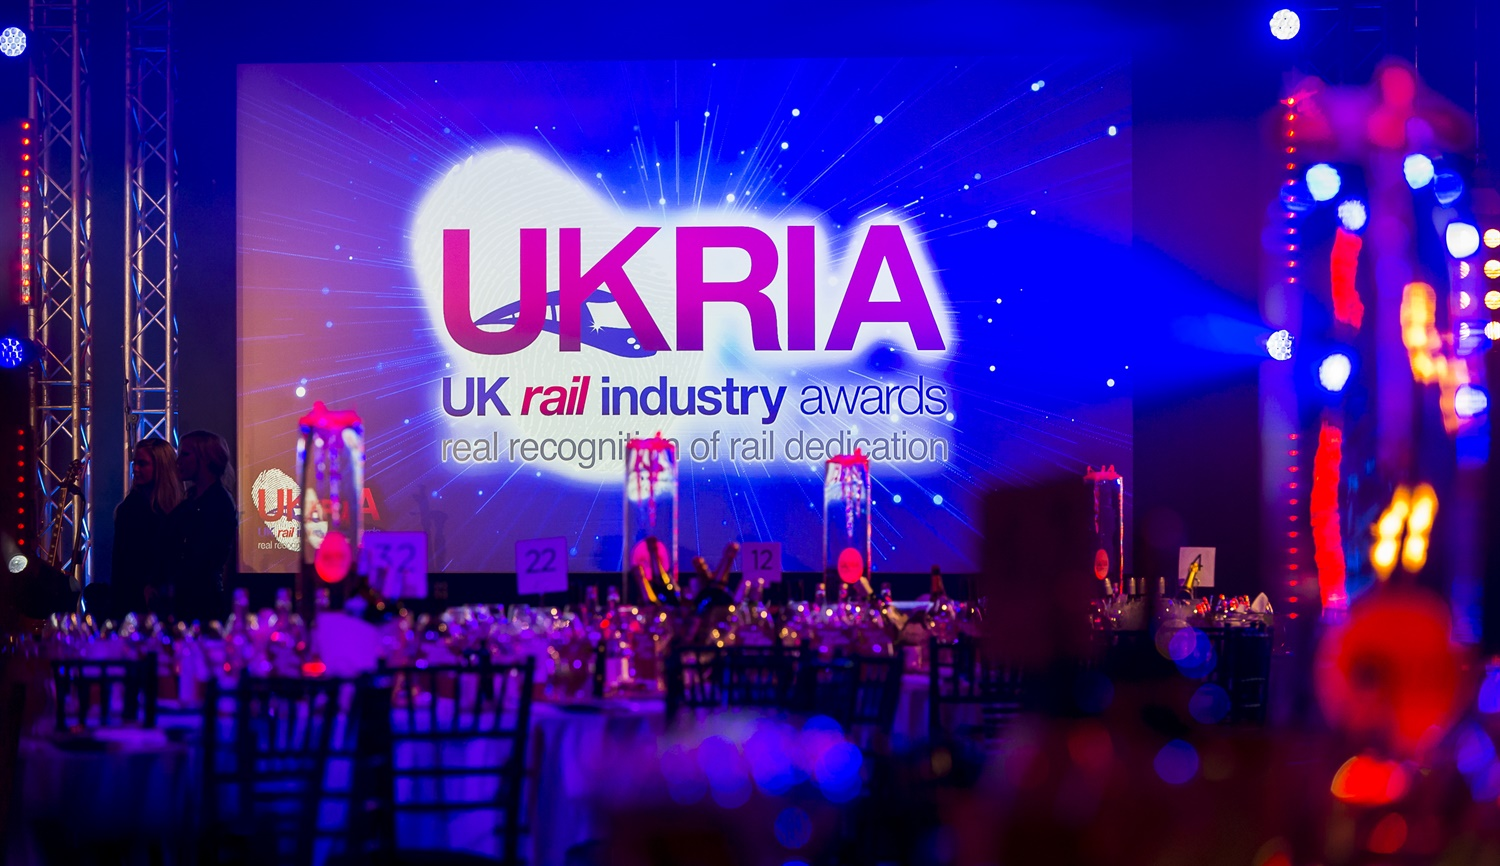 UKRIA sees record-breaking number of entries ahead of 'extraordinary' event